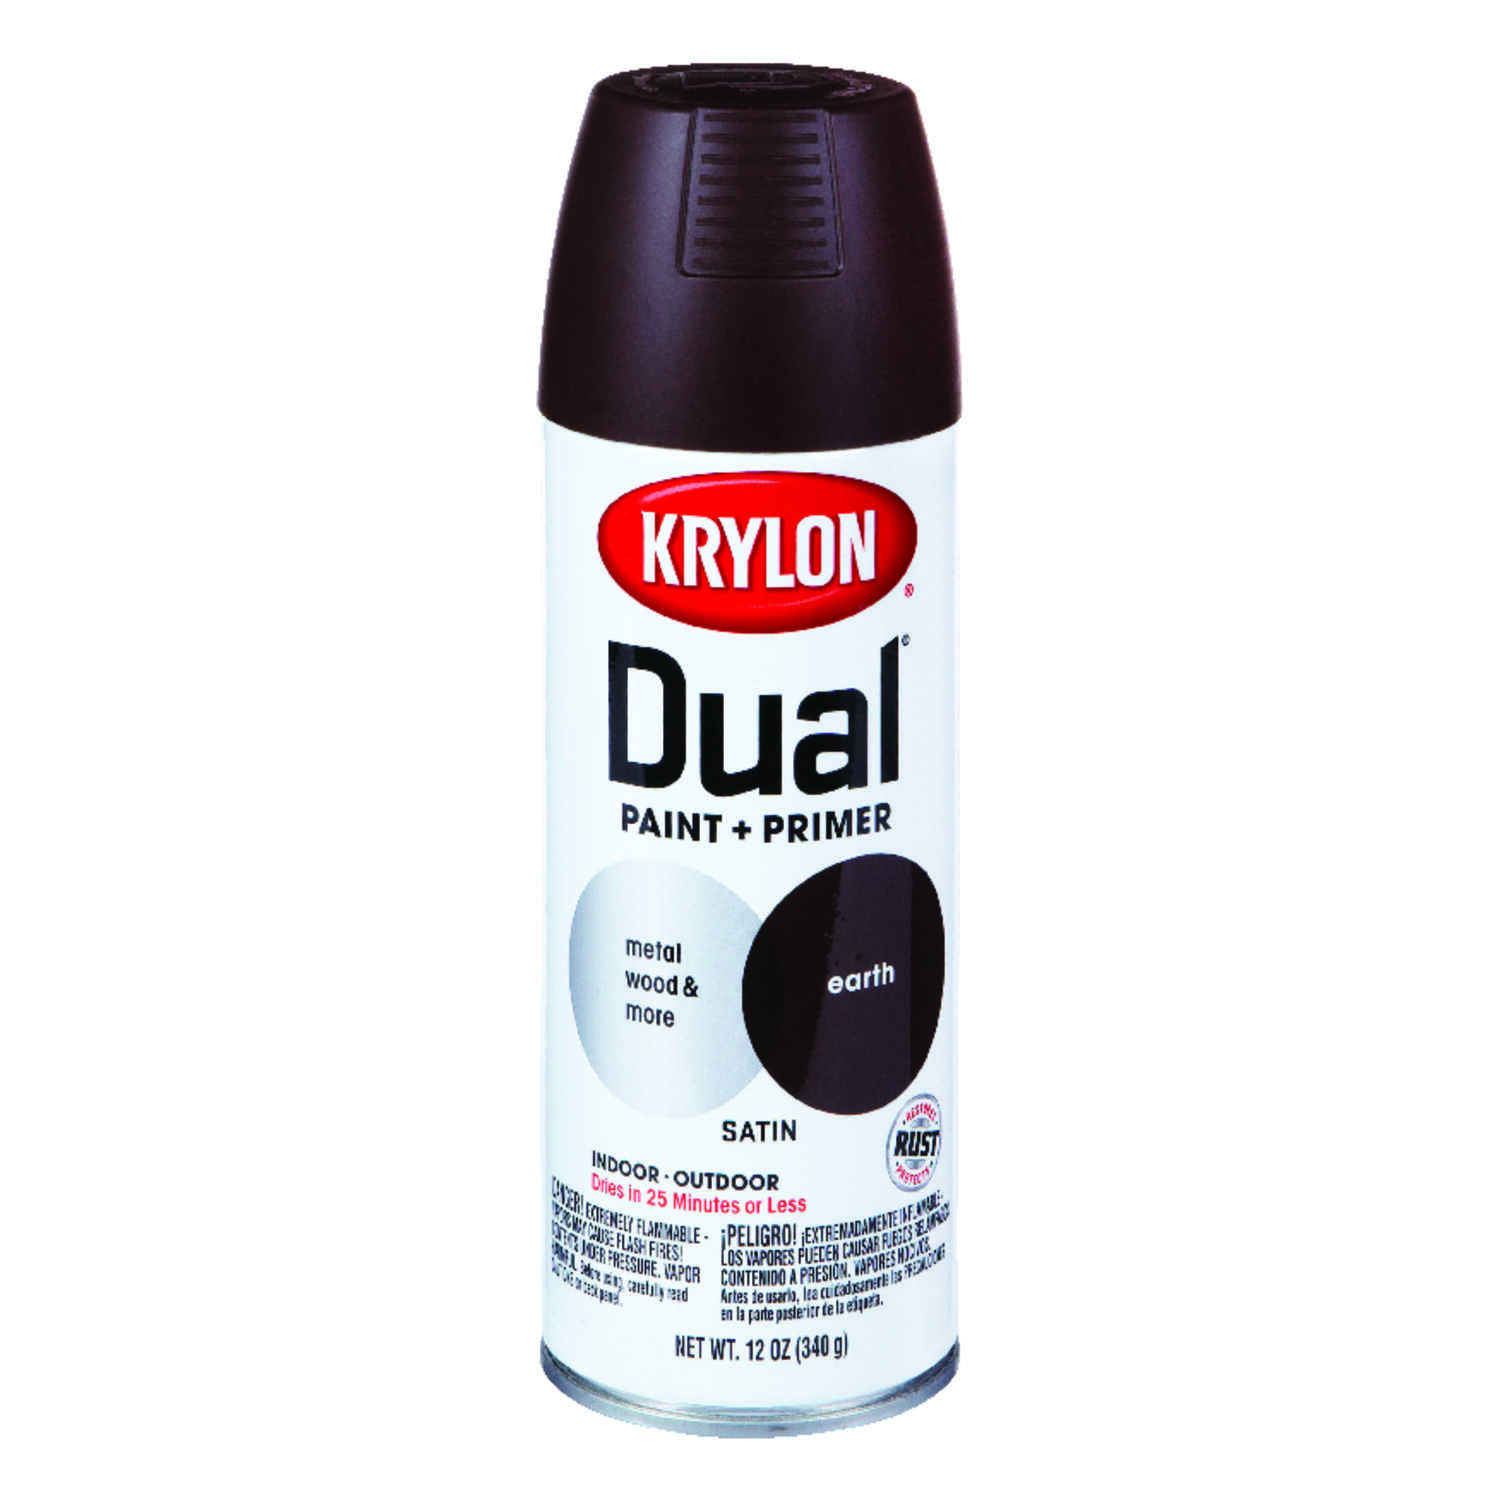 Krylon  Dual Superbond  Satin  Earth  12 oz. Paint + Primer Spray